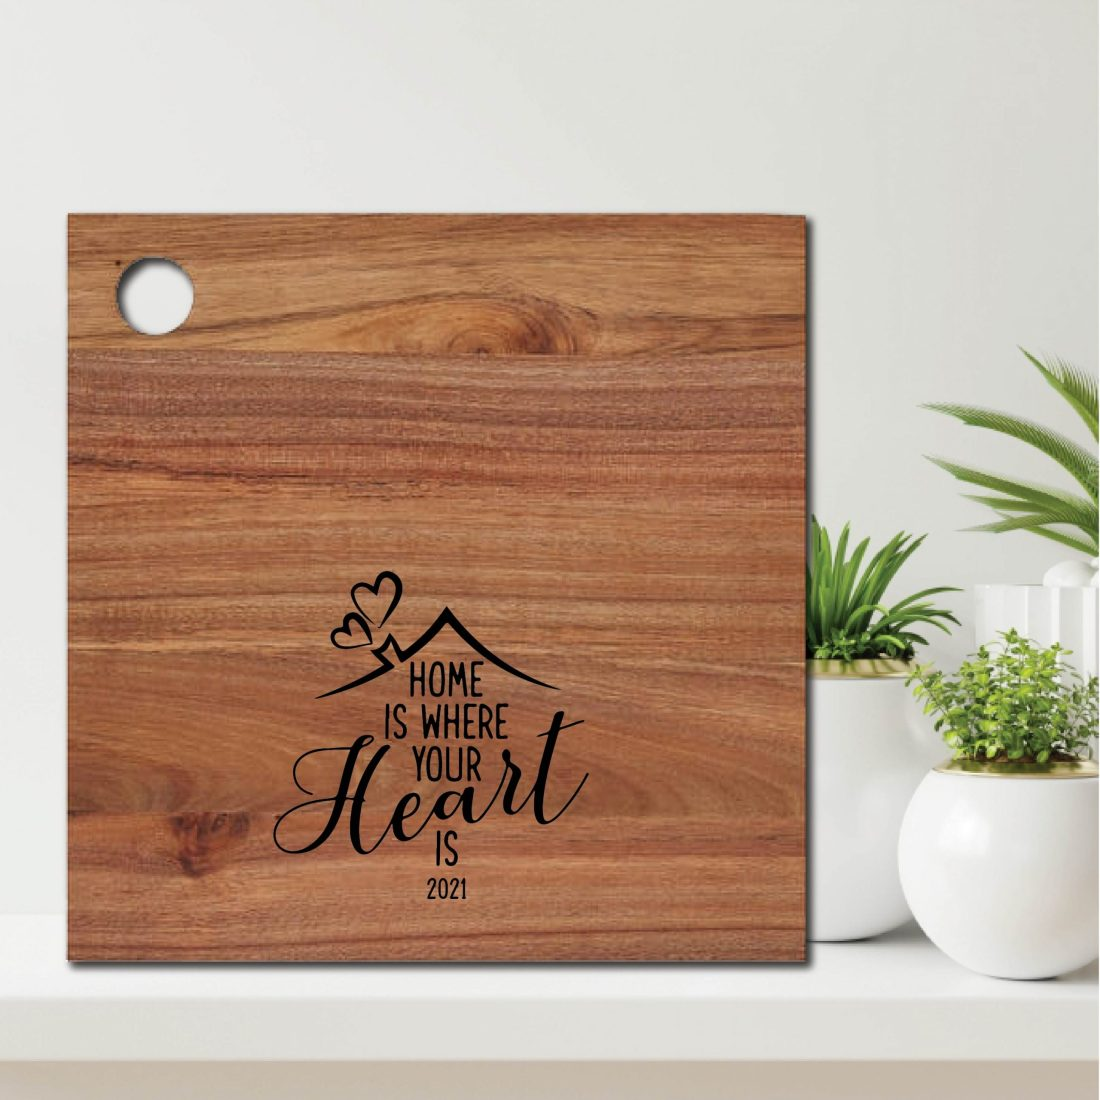 Home is Where your Heart is Real Estate Gift Chopping Board